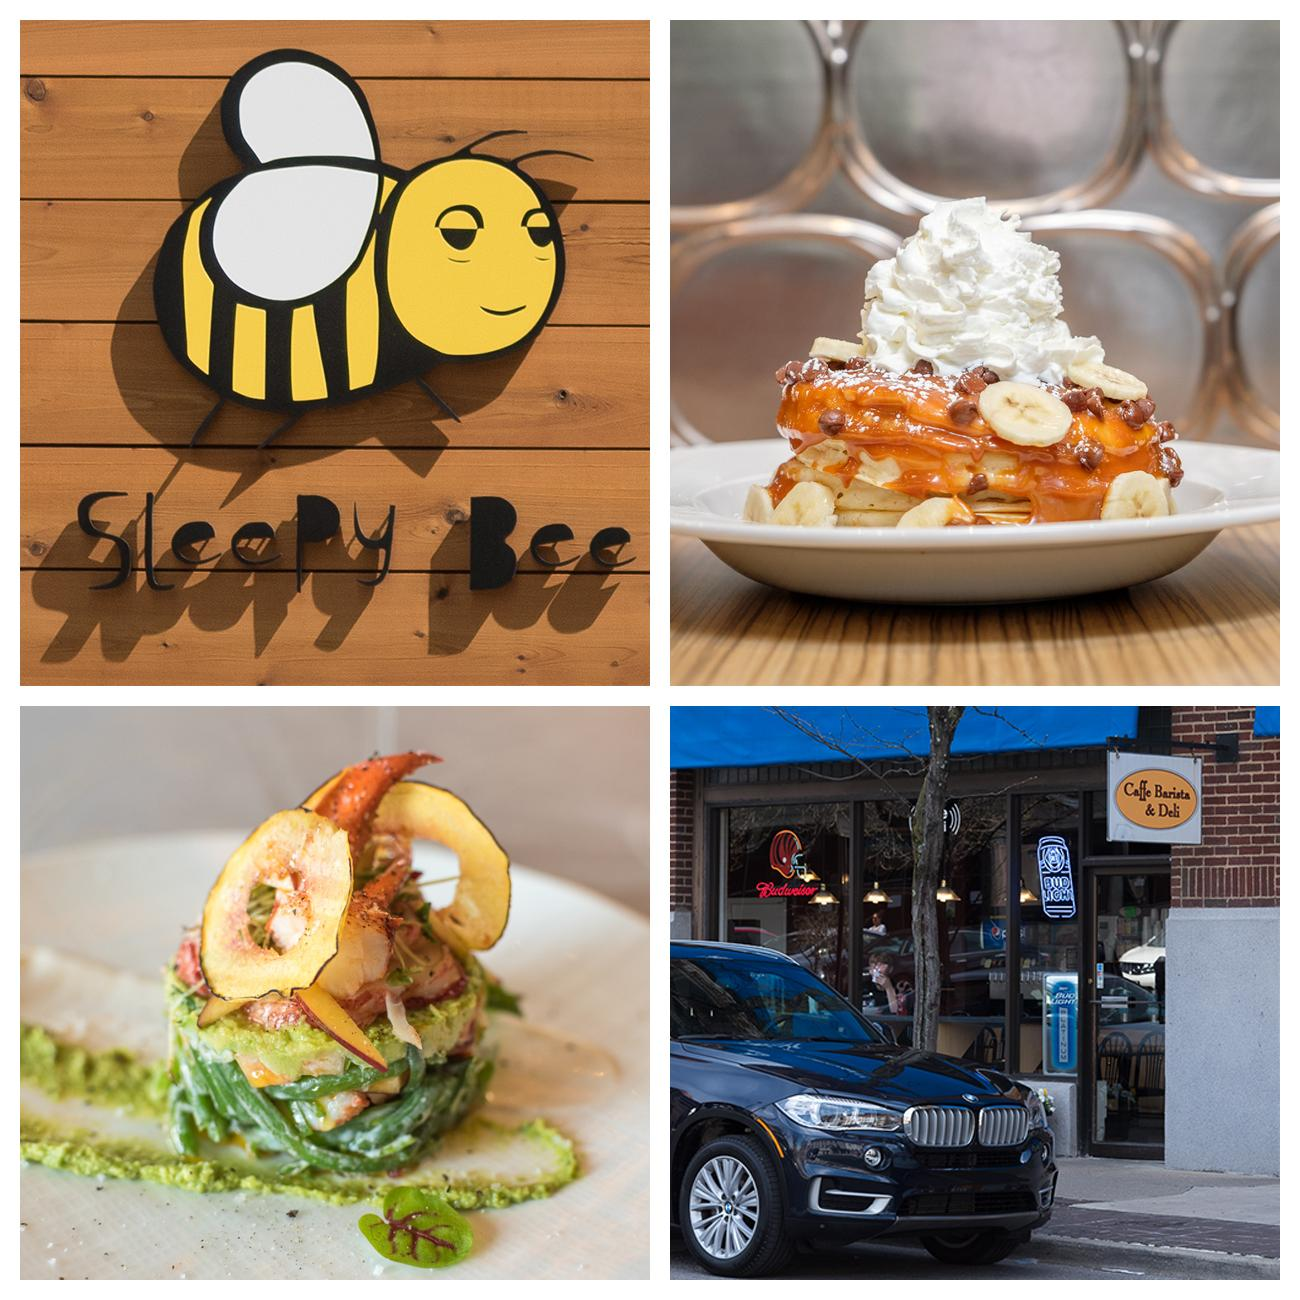 4th Street has many cafes and restaurants: (clockwise from top left) Sleepy Bee Cafe, Wild Eggs, Cafe Barista & Deli, and Restaurant L / ADDRESSES: 8 E 4th Street, 301 E 4th Street, 231 W 4th Street, 301 E 4th Street / Images: (clockwise from top left) Leah Zipperstein, Amy Elisabeth Spasoff, Sherry Lachelle Photography, and Leah Zipperstein // Published: 4.23.18